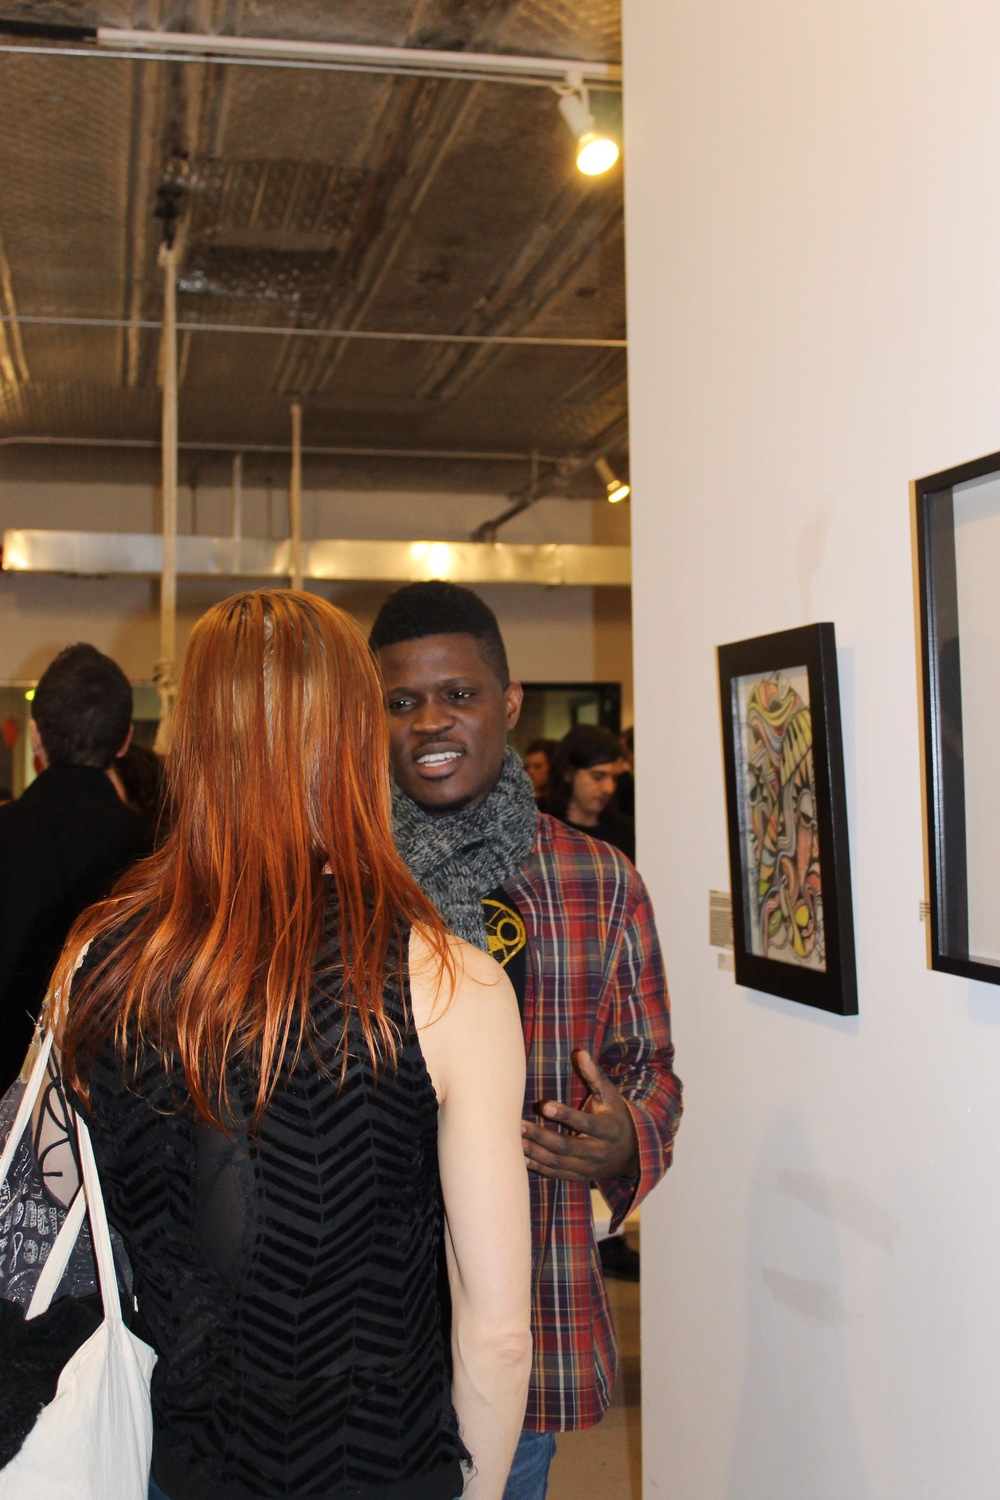 Laolu discusses his art with one of the guests.